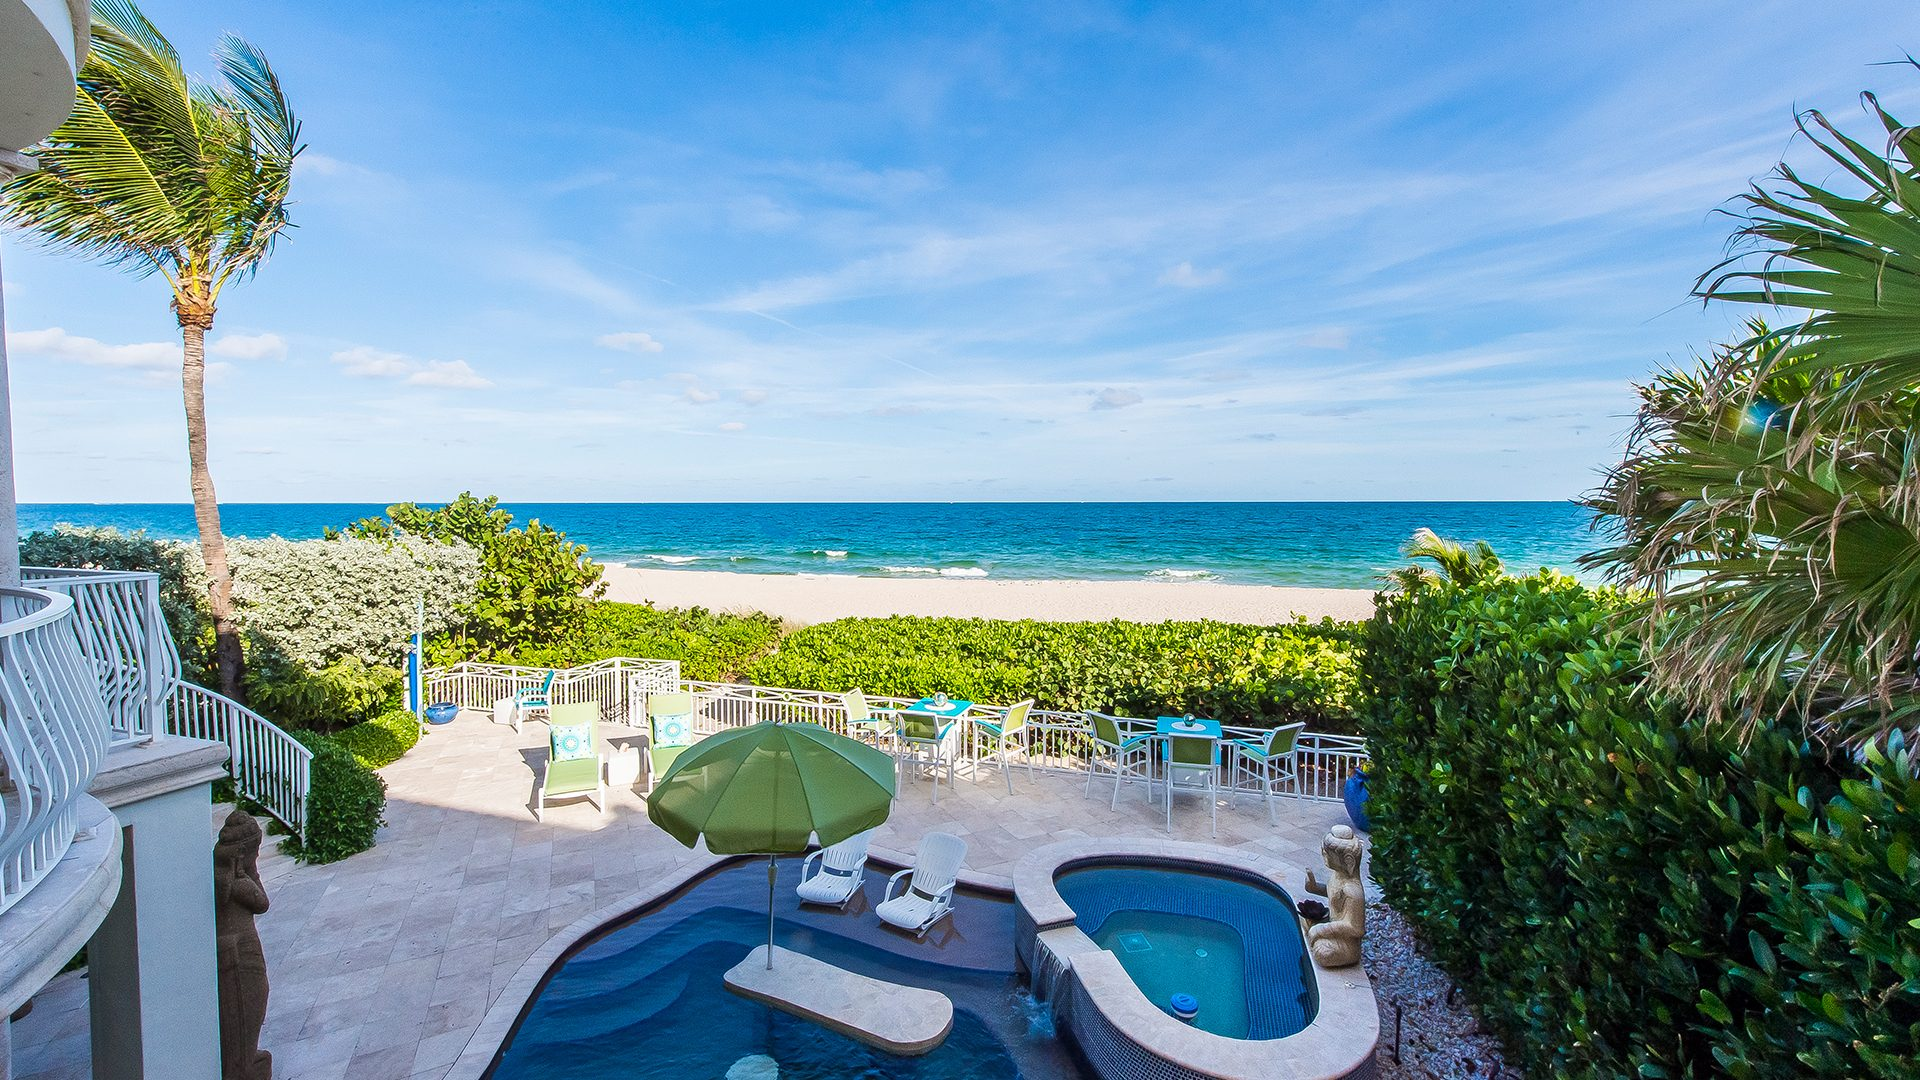 Beach View from Luxury Oceanfront Home, 2416 North Atlantic Boulevard, Fort Lauderdale, Florida 33305